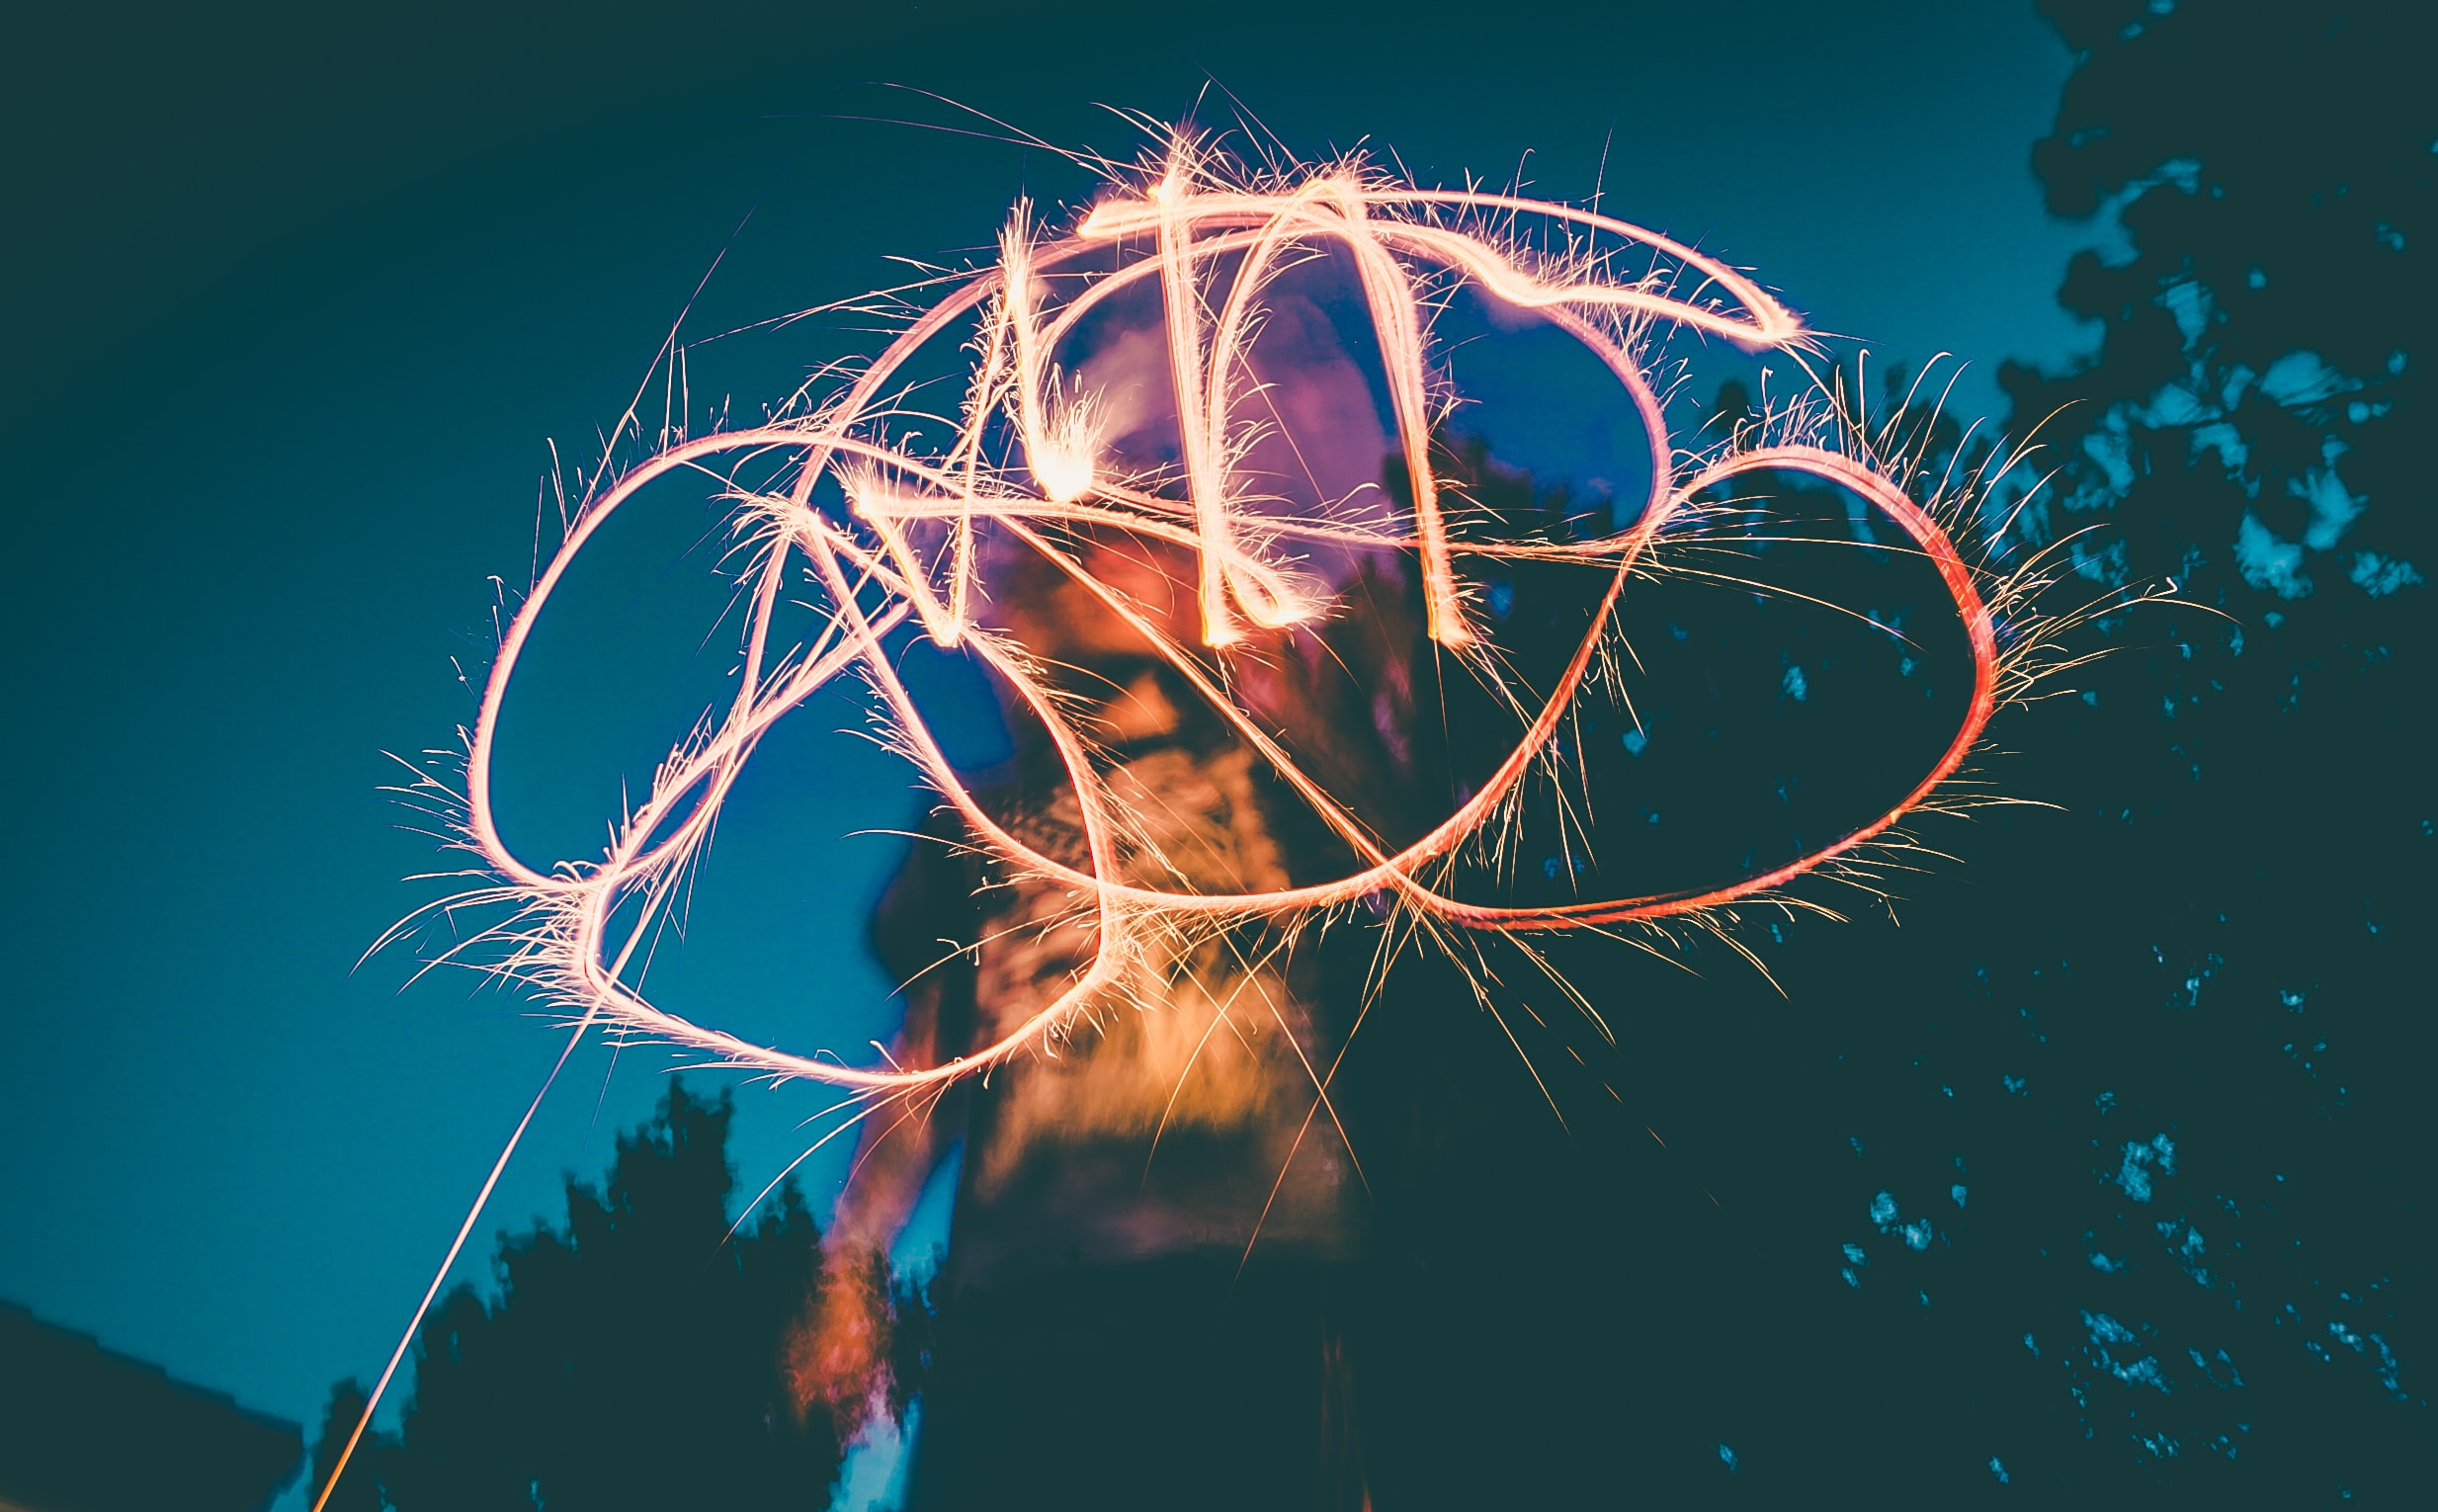 A person draws an abstract pattern in the air with a lighted sparkler firework